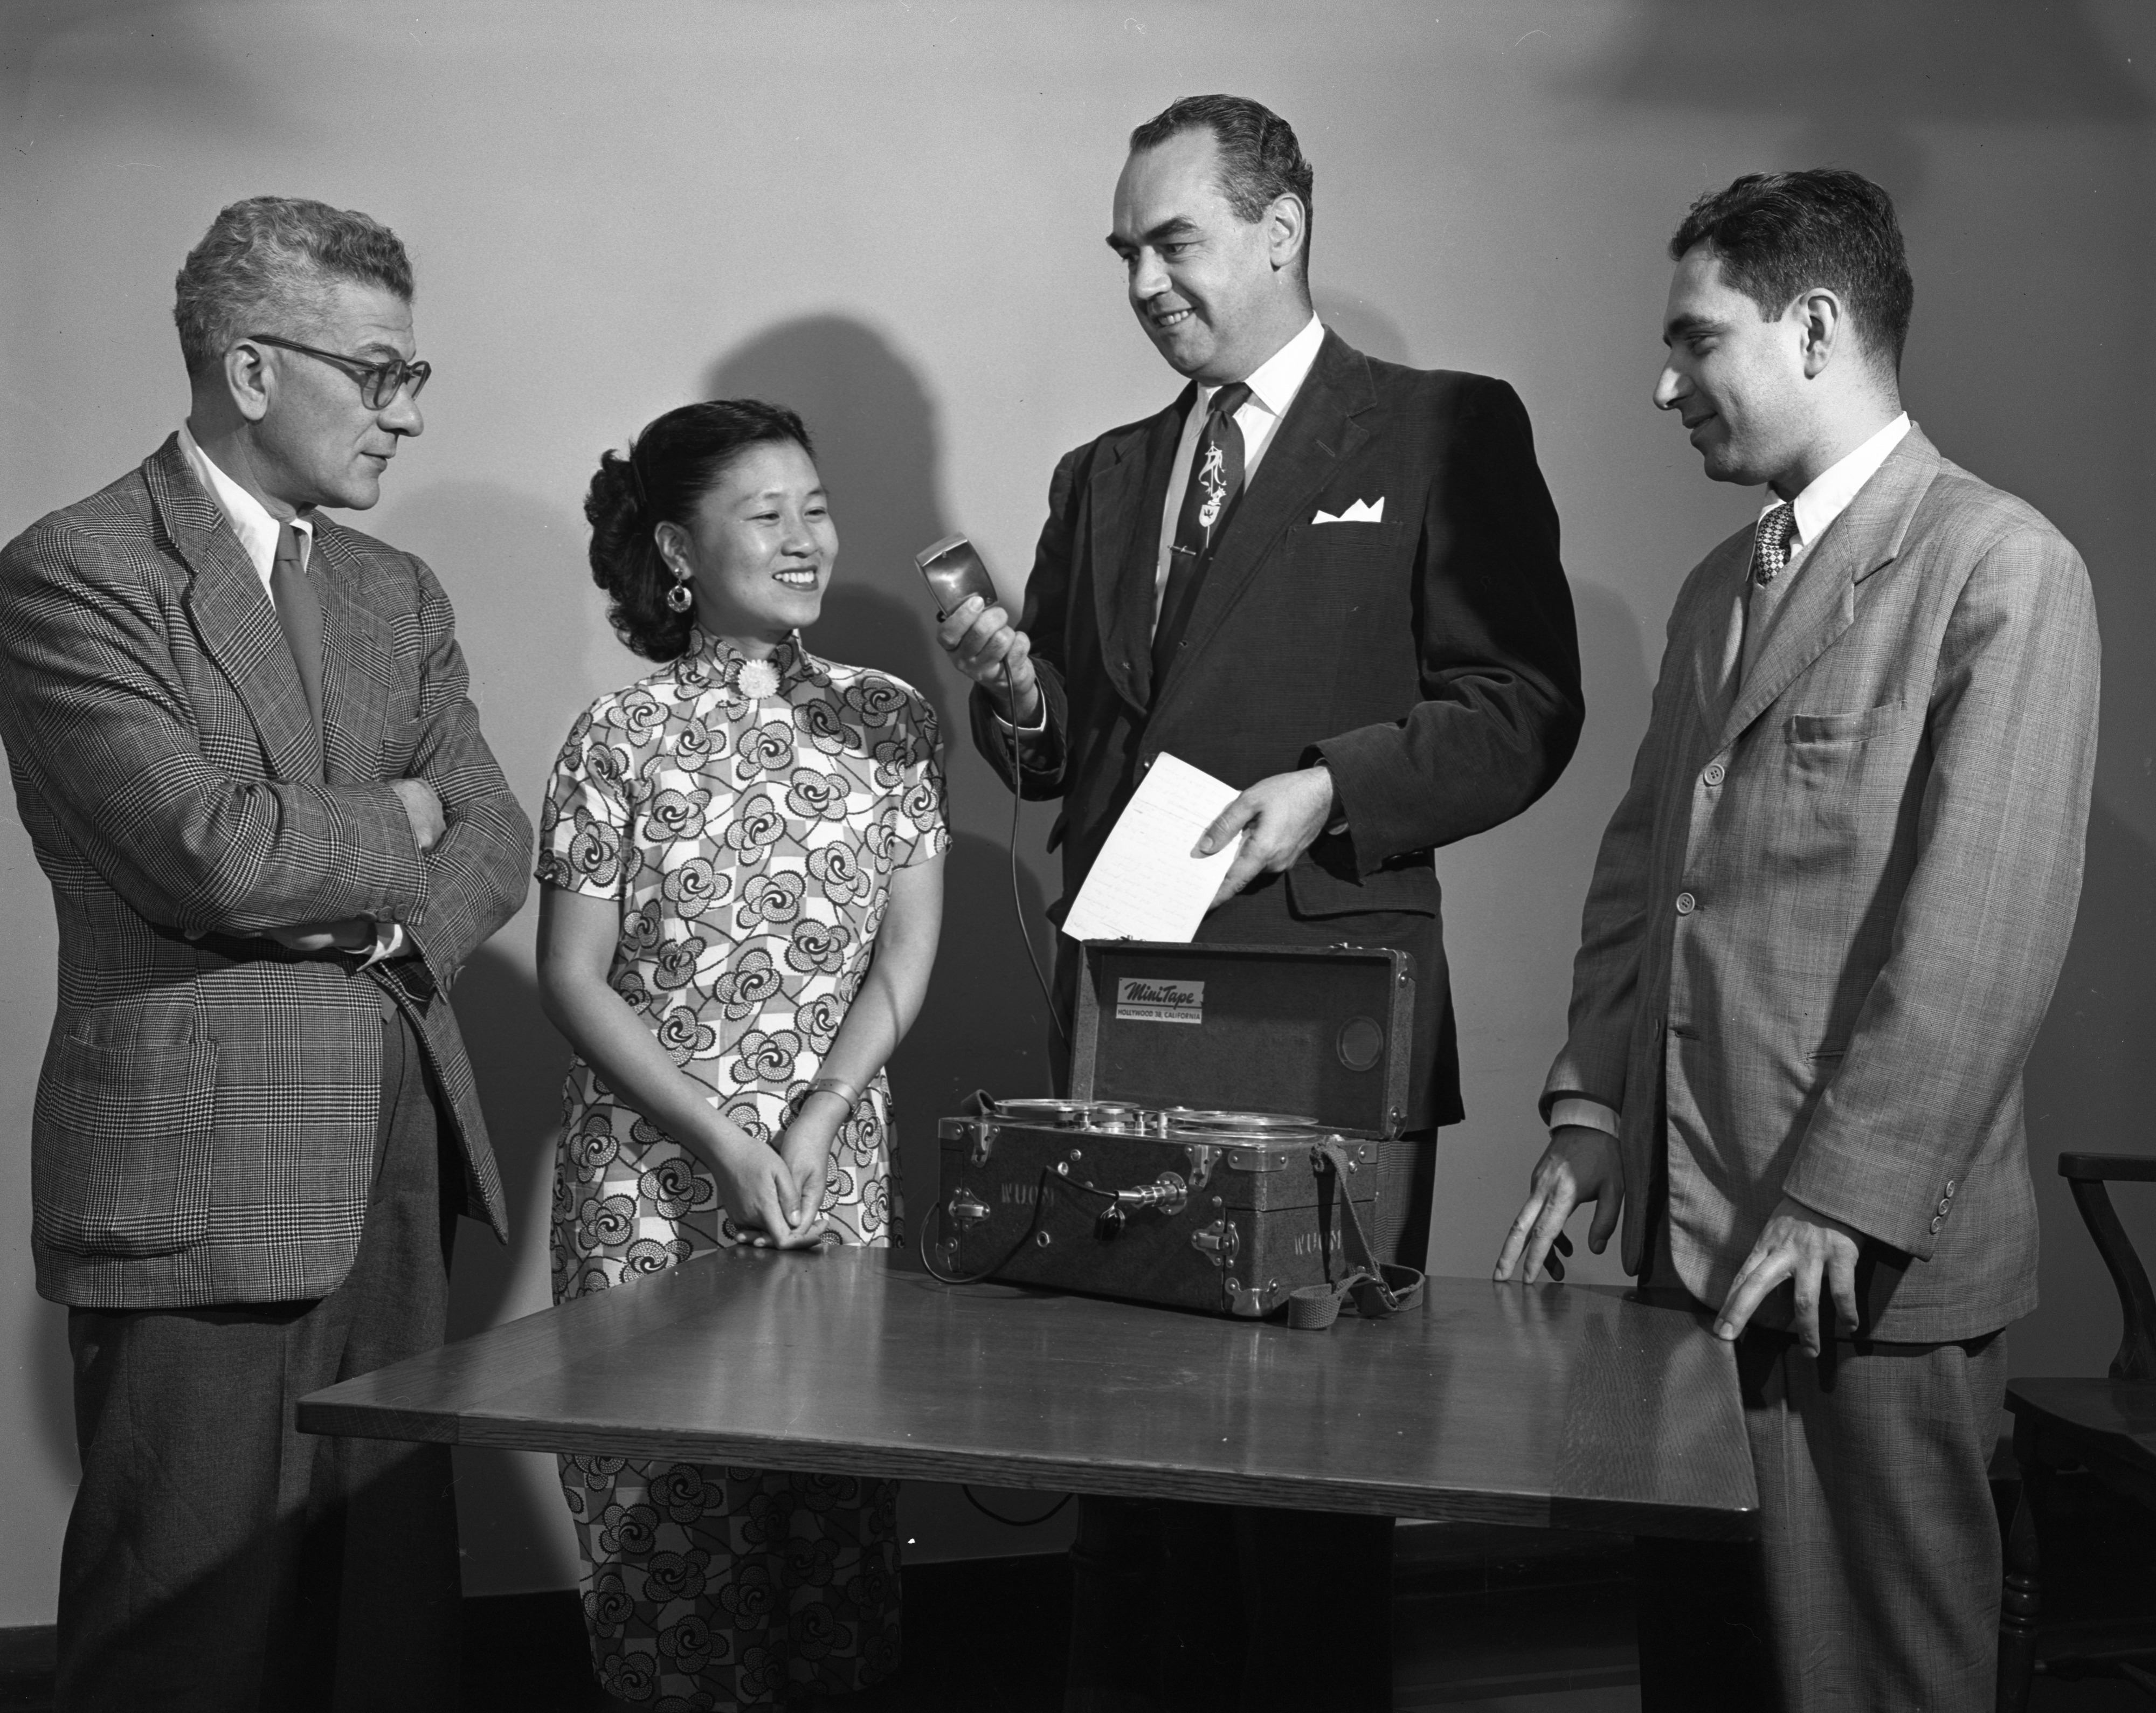 UM Teachers Of English Learn How To Make Tape Recordings For WUOM, October 29, 1953 image